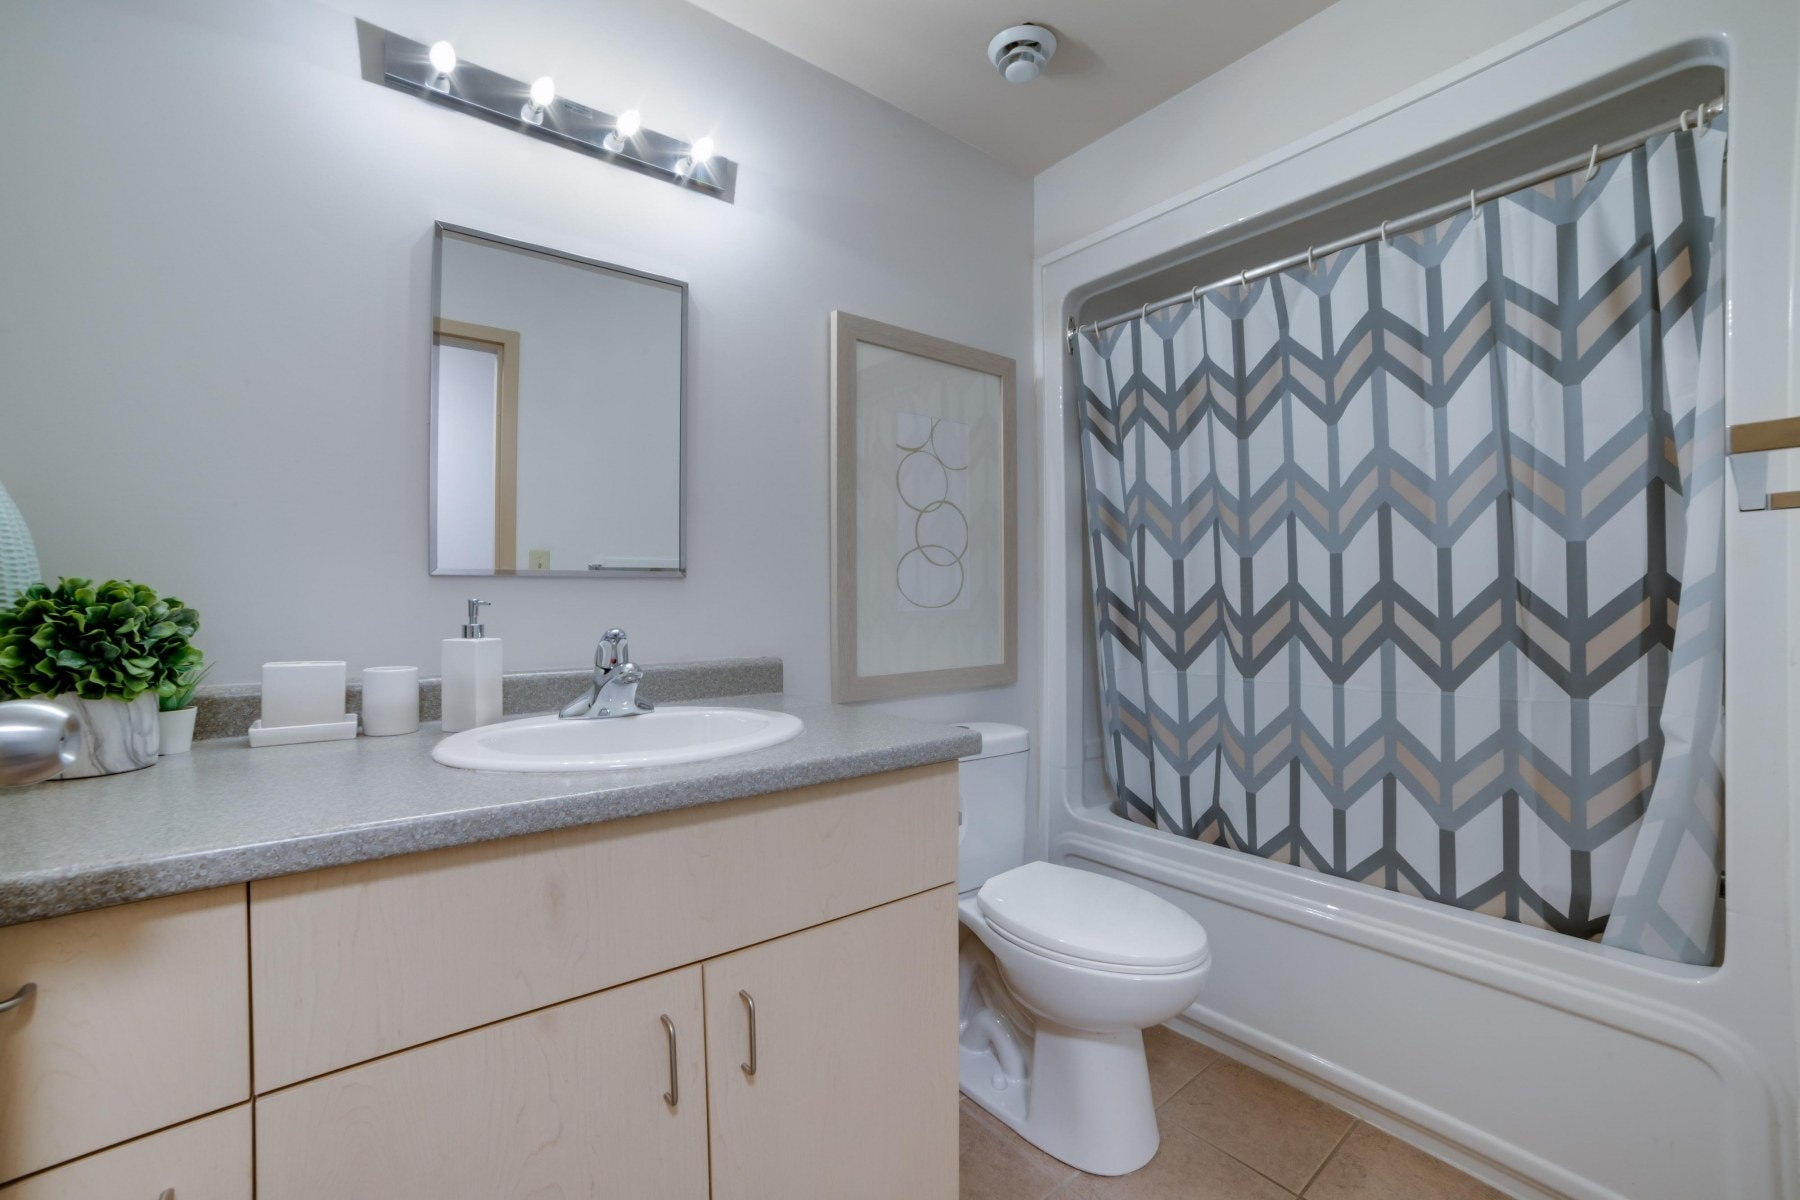 3 piece bathroom with shower, sink and toilet